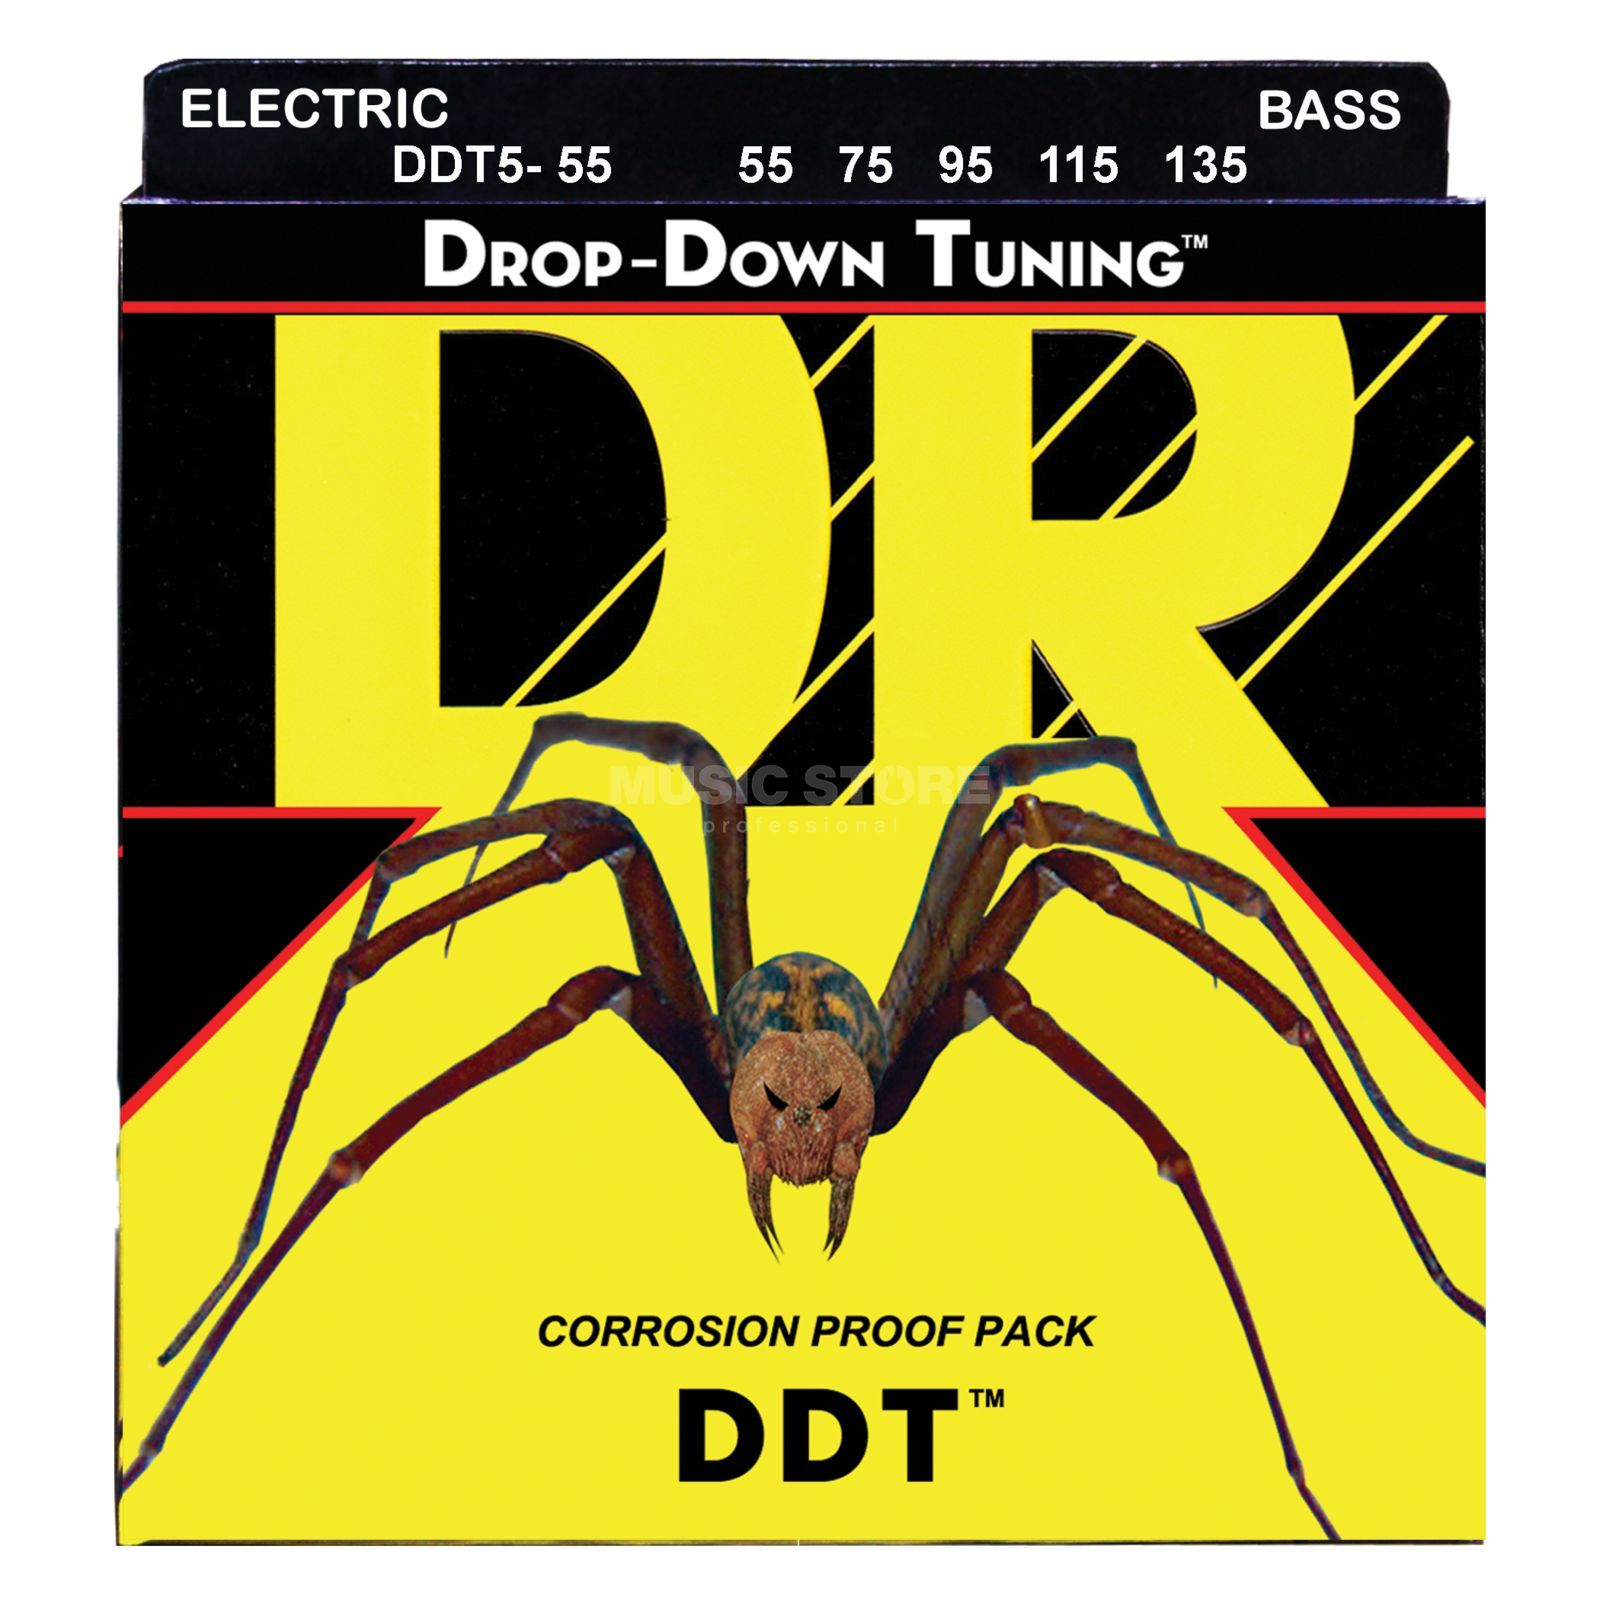 DR 5 Bass Strings 55-135 Drop-Down Tuning DDT5-55 Изображение товара